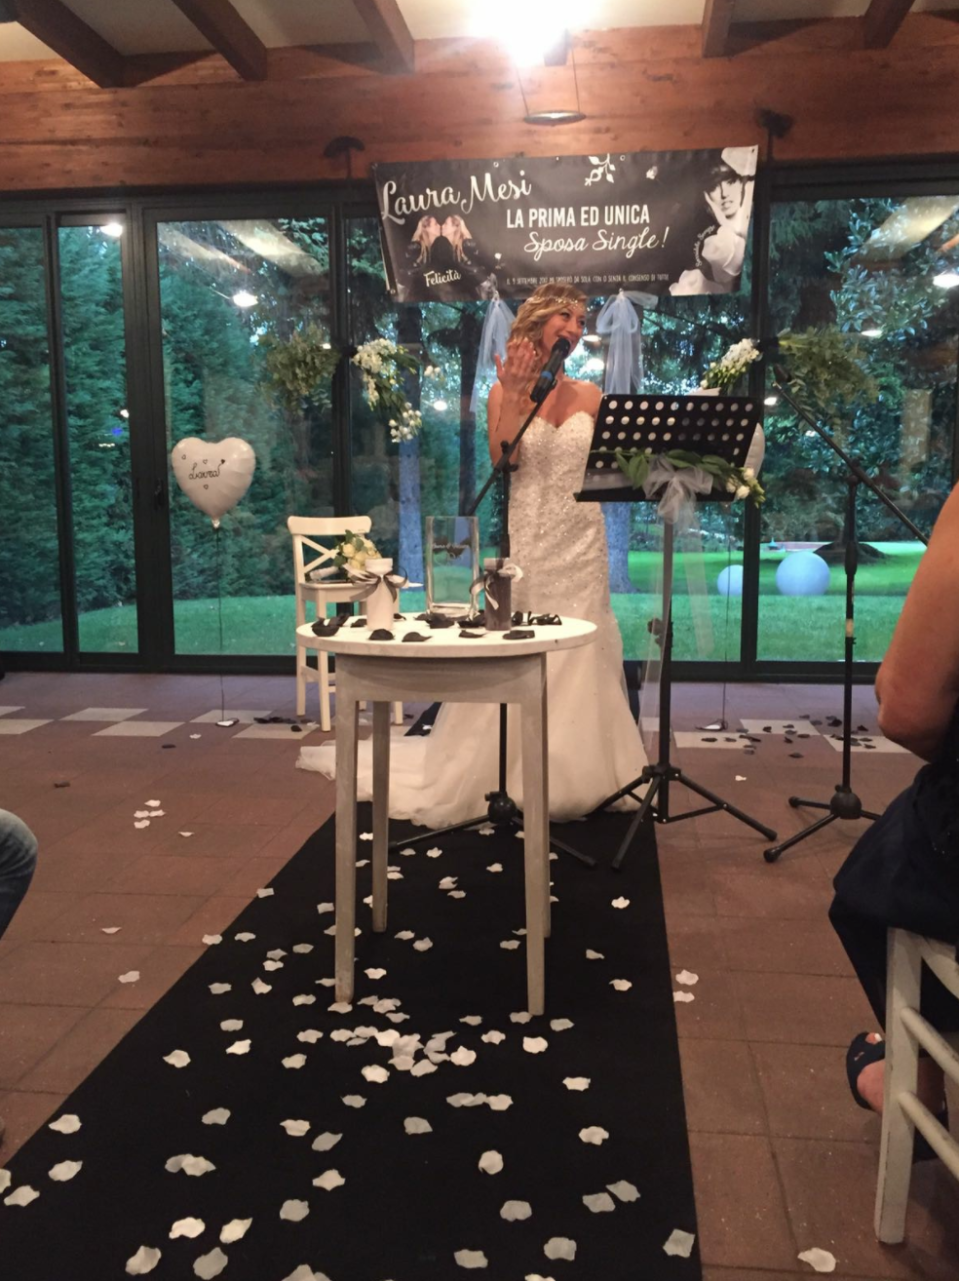 Her solo wedding ceremony featured 70 guests and the typical big wedding cake [Photo: Facebook/laura.mesi.5]